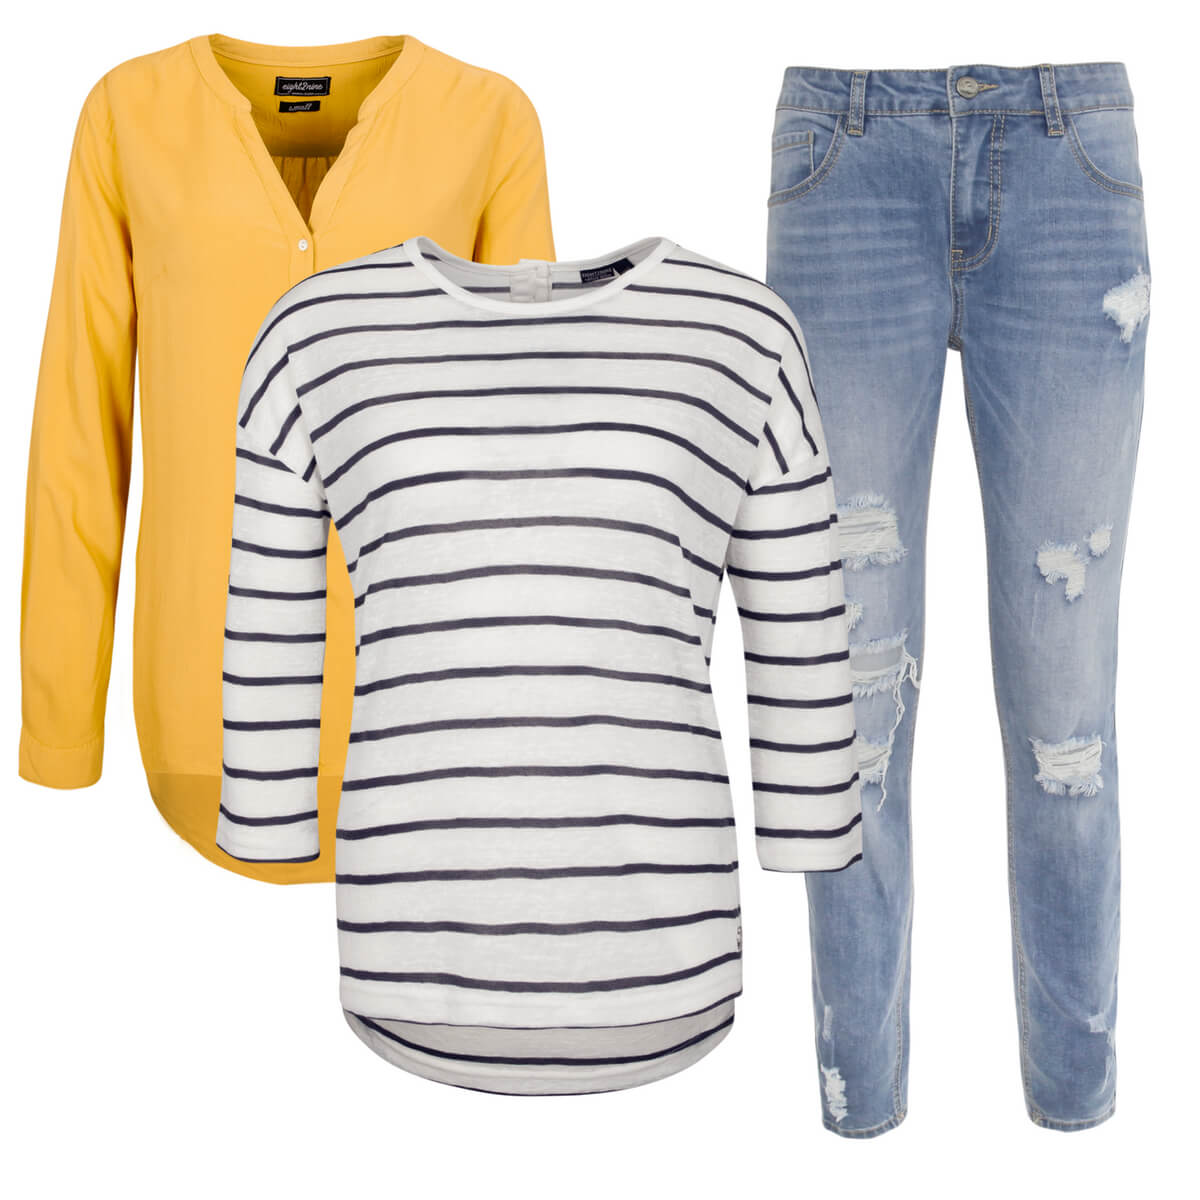 Outfit mit Bluse, Longsleeve und Jeans